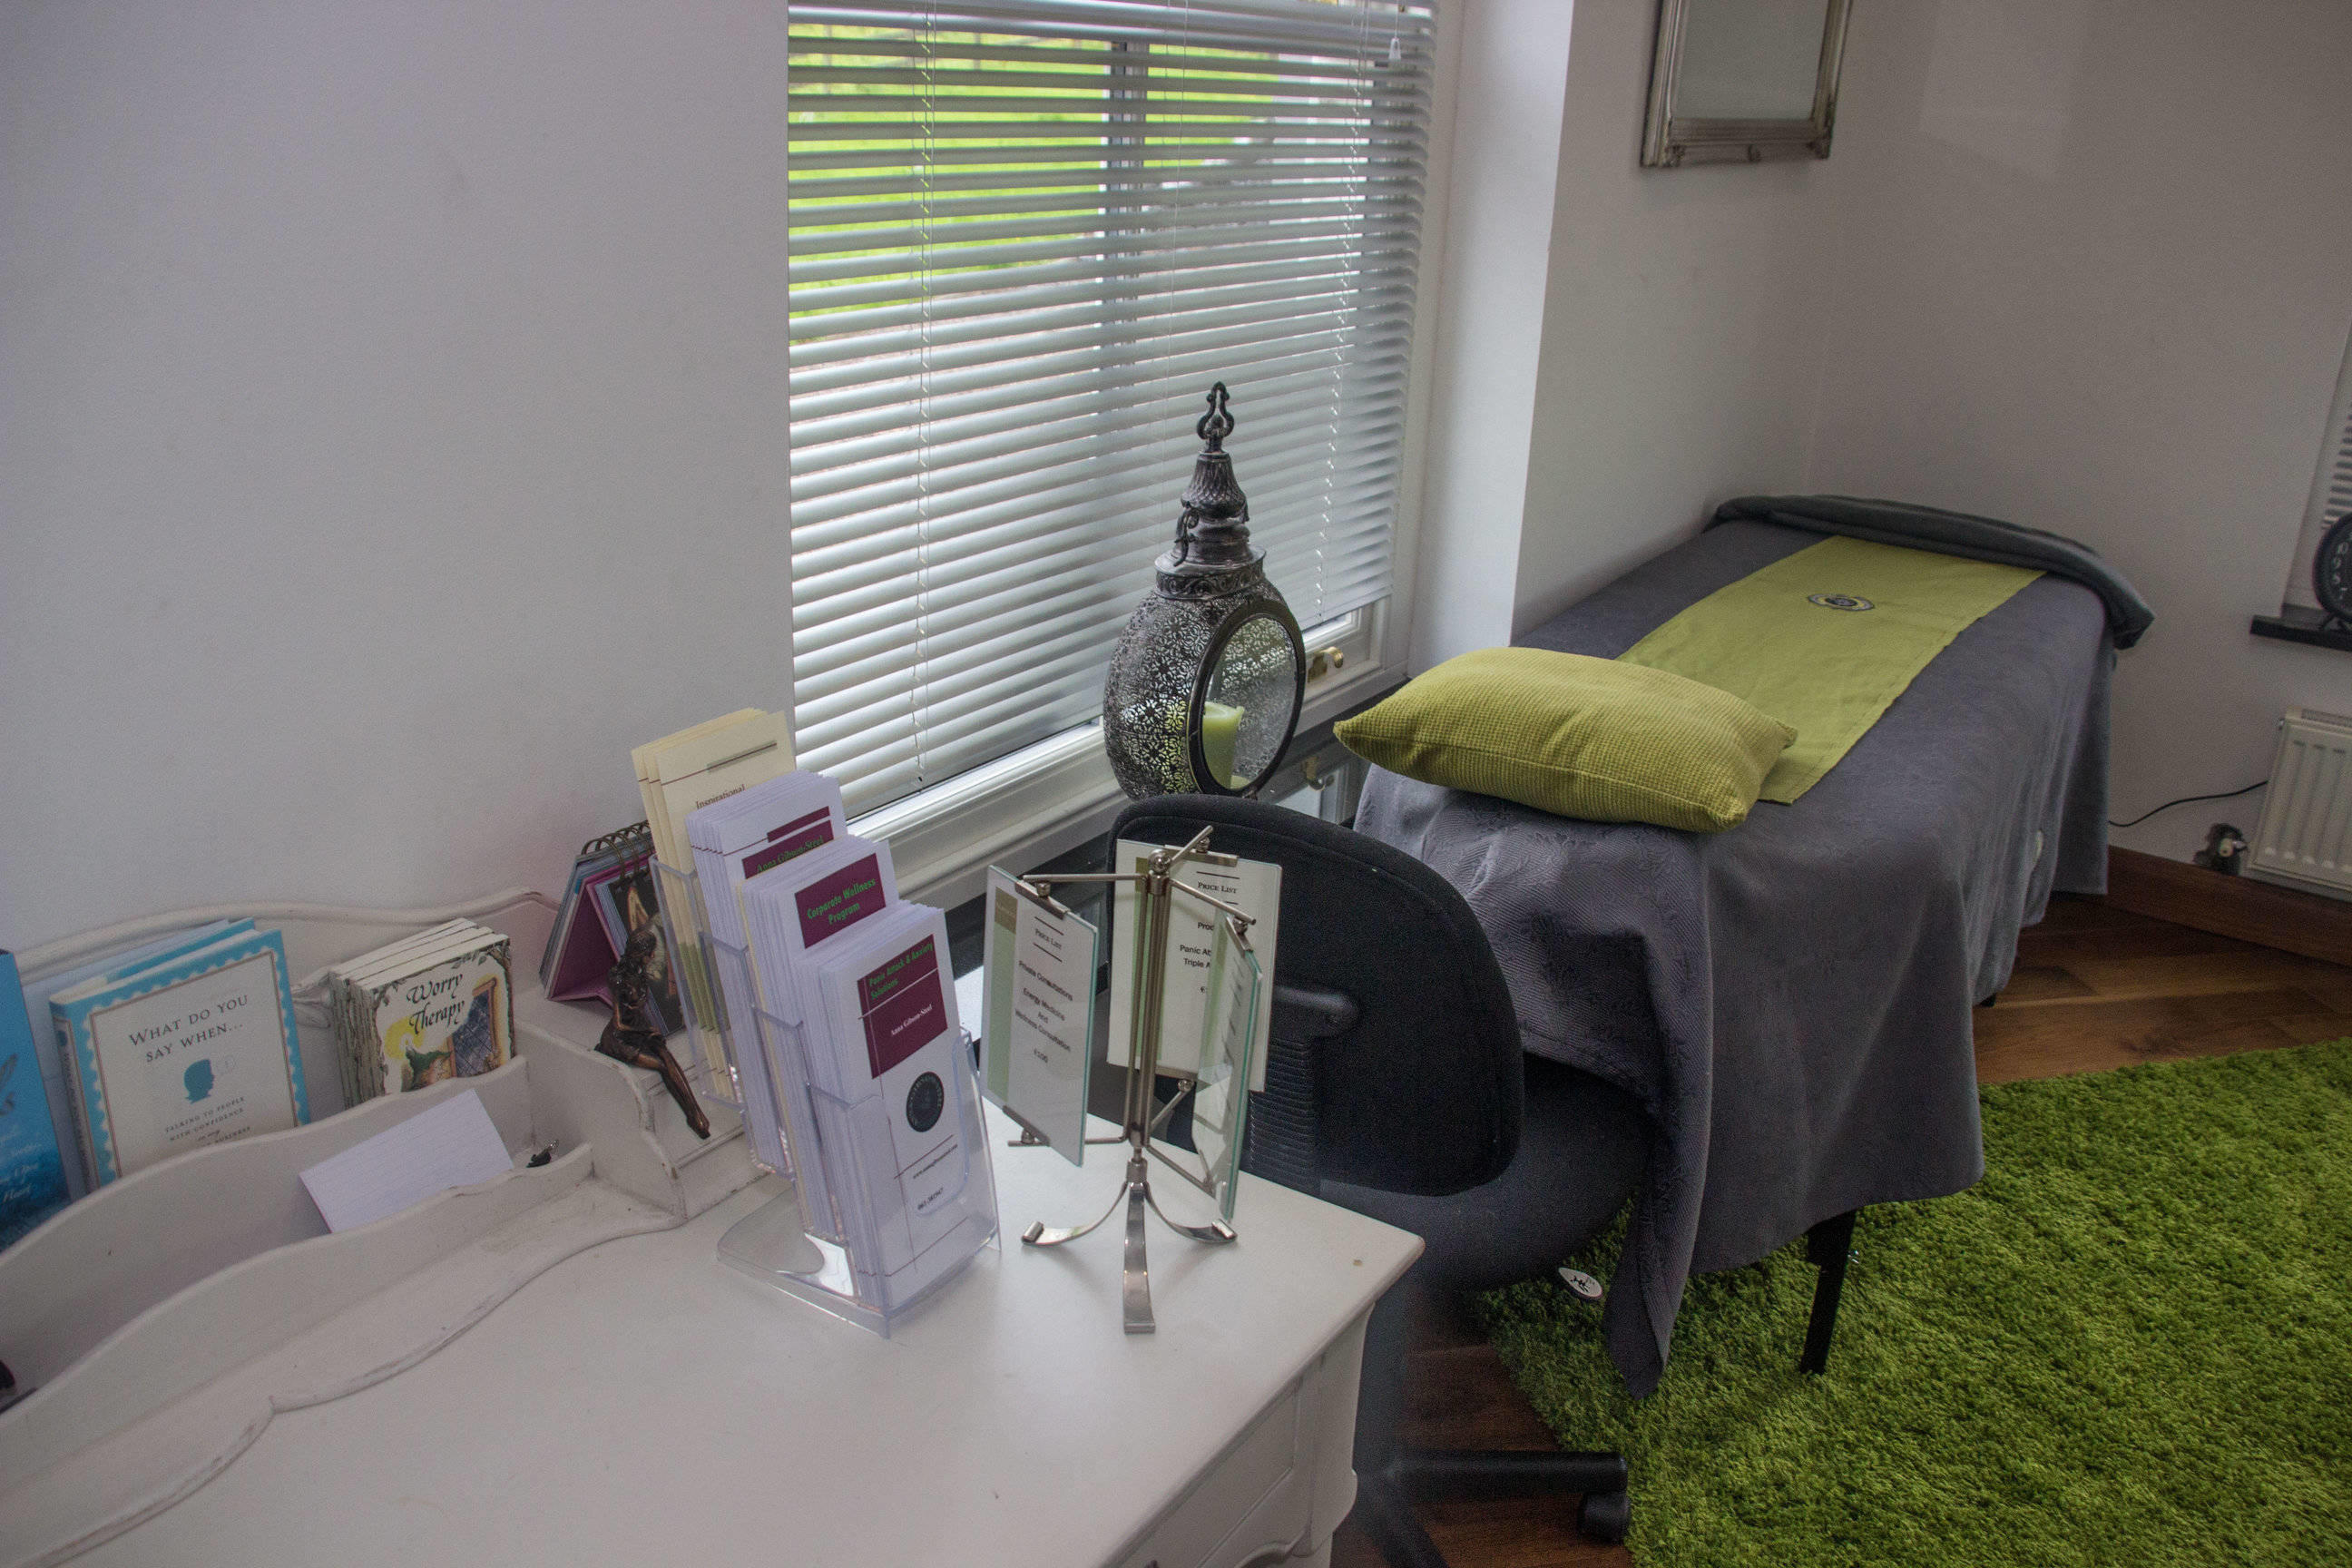 With private treatment rooms, The Holistic Centre of Excellence can peacefully treat patrons.